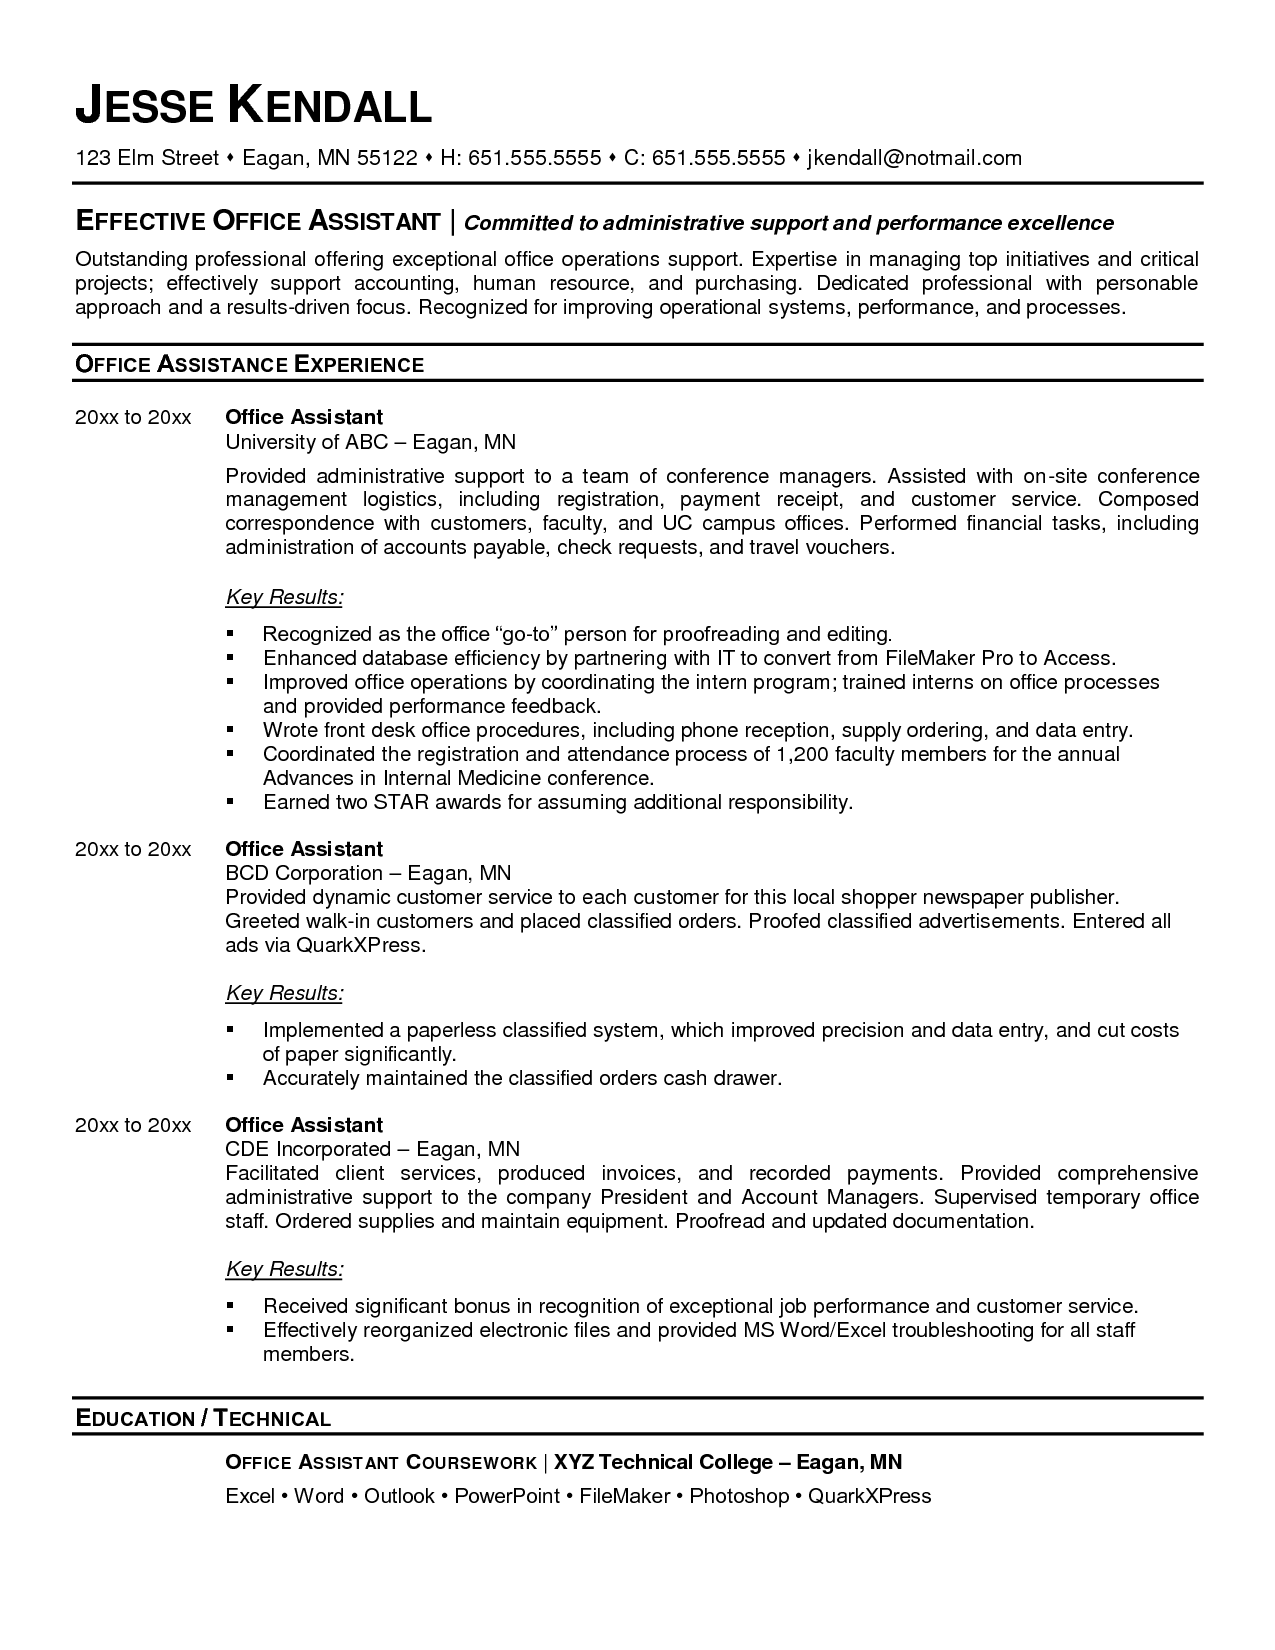 medical office administrative assistant resume sample resume for administrative assistant at medical office jesse kendall - Sample Resume Healthcare Administrative Assistant